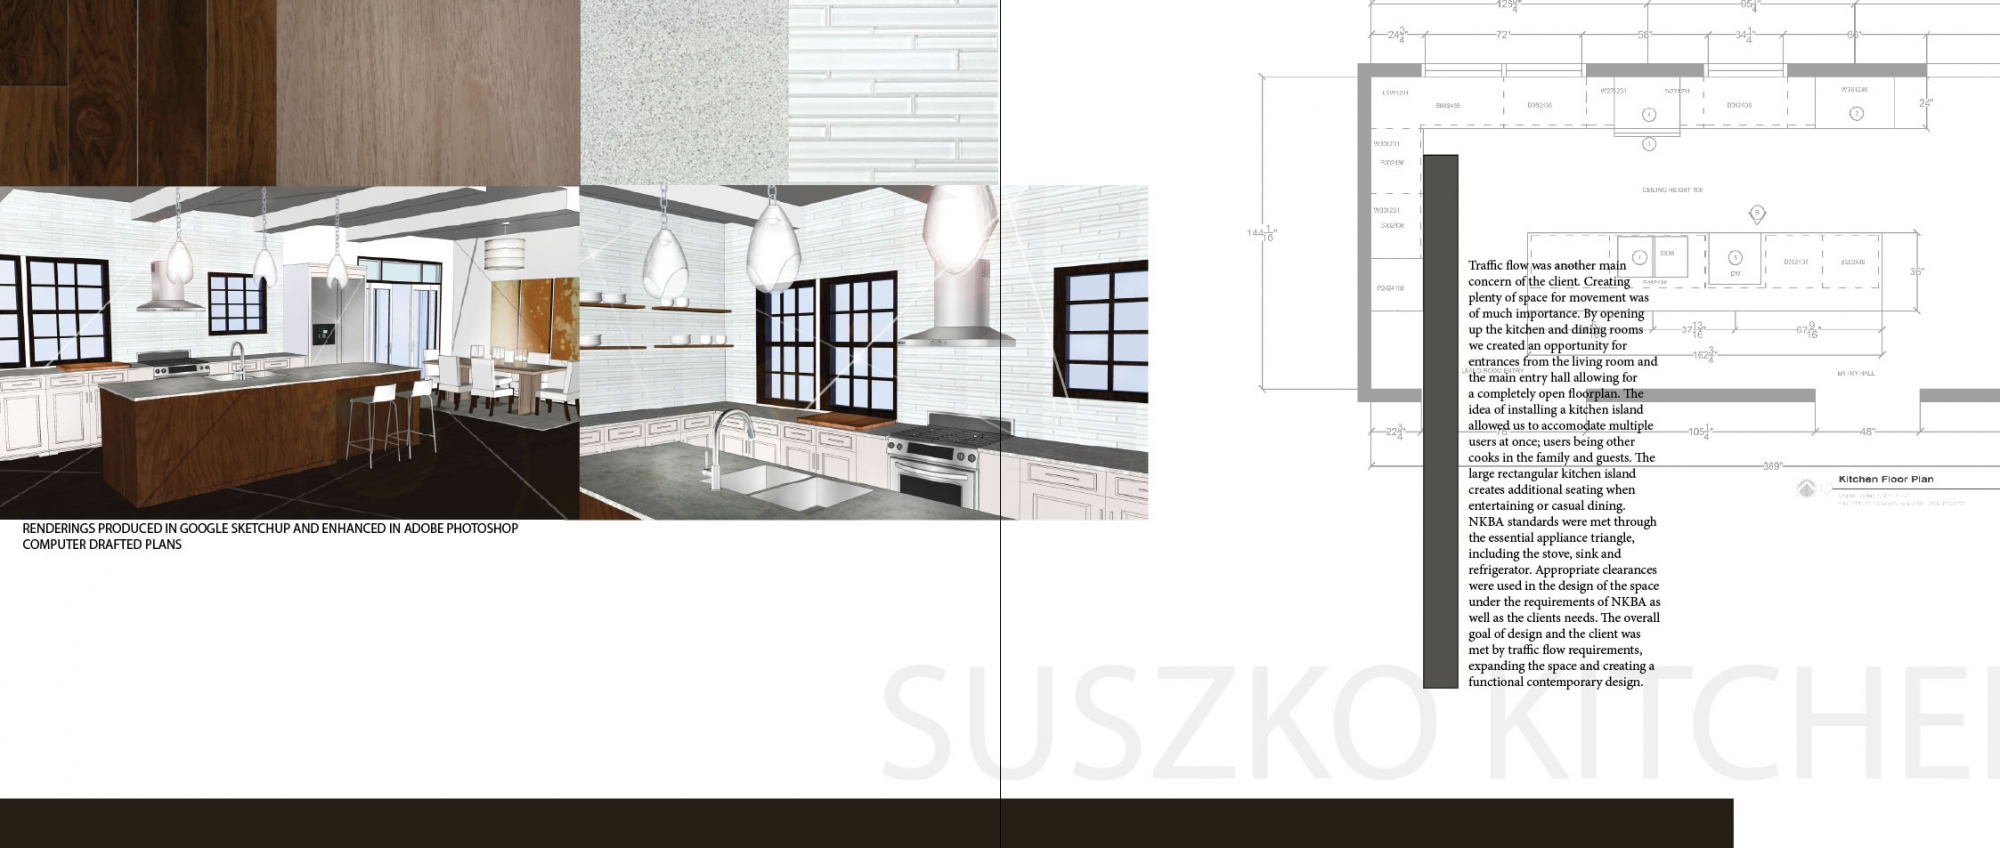 KITCHEN DESIGN Interior Design Portfolio - KITCHEN DESIGN & Residential Design - Interior Design Portfolio